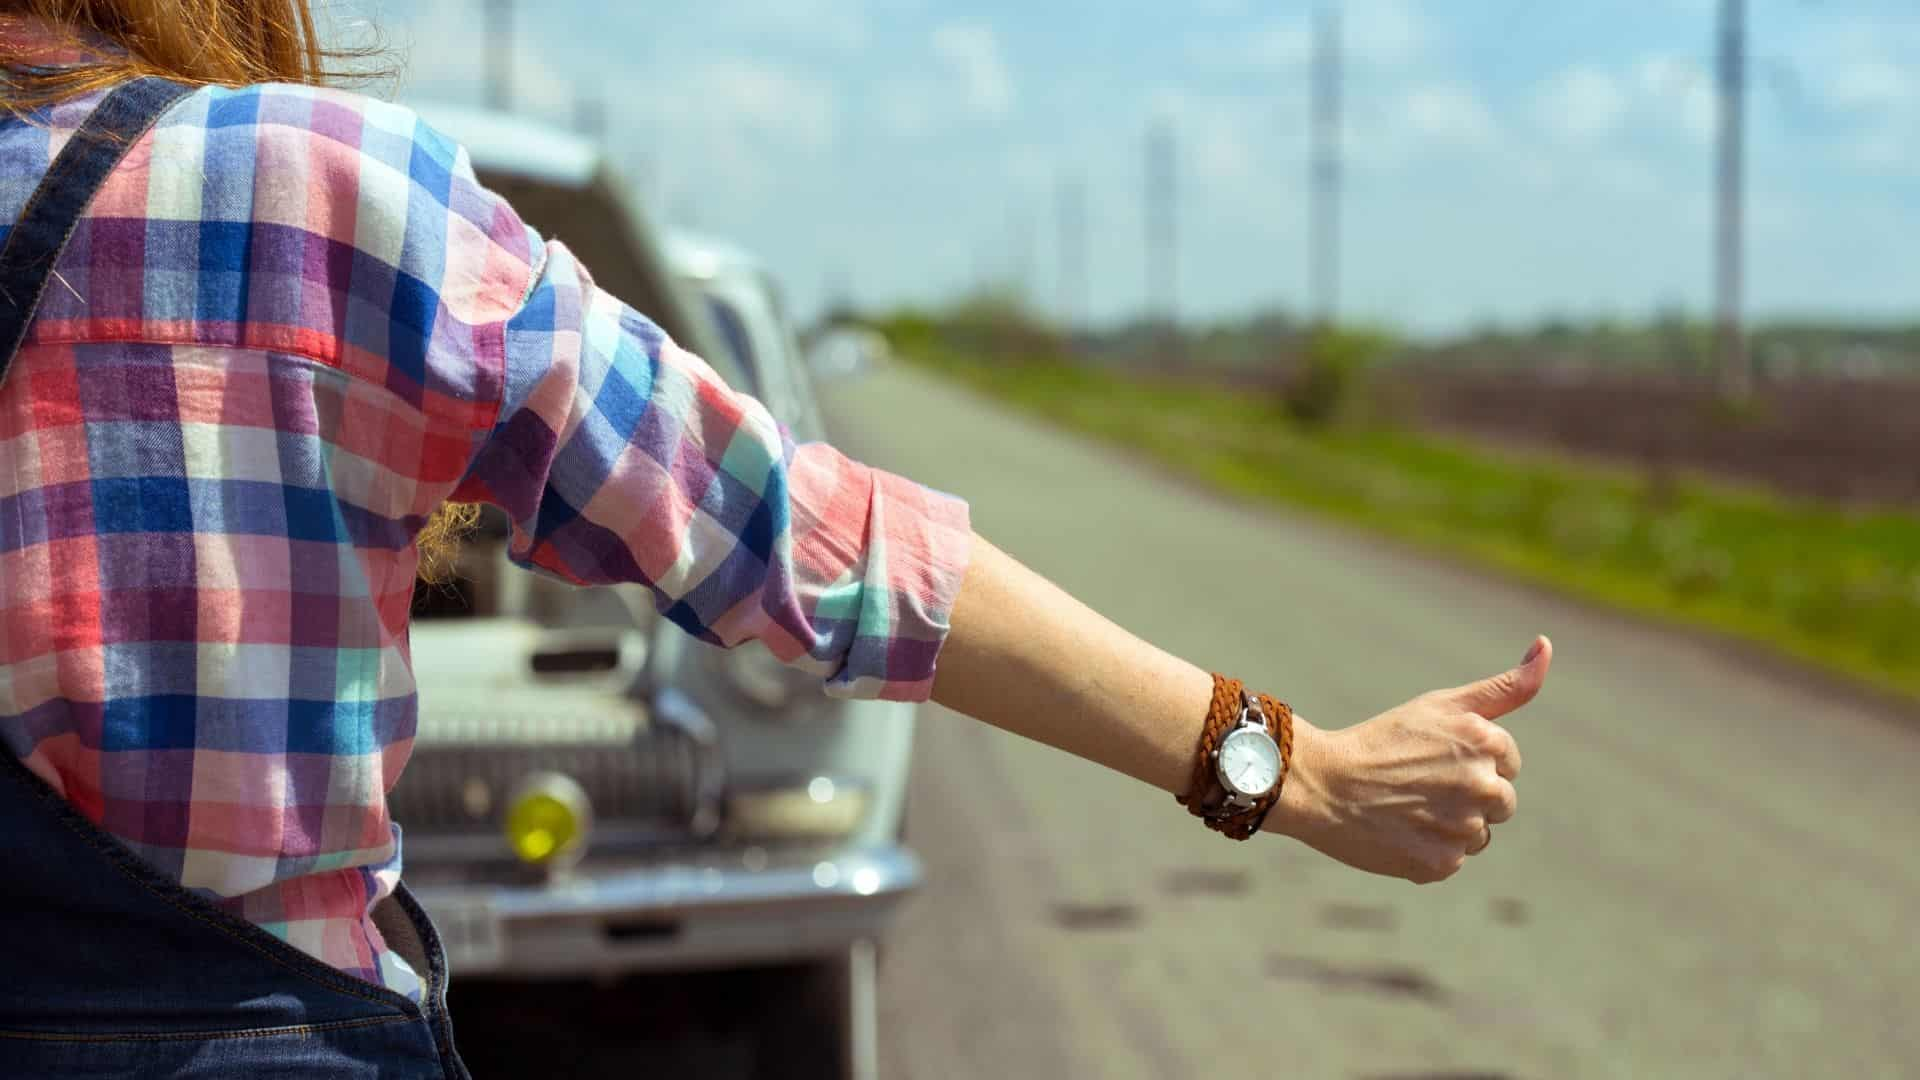 Is it legal to hitchhike in Australia?